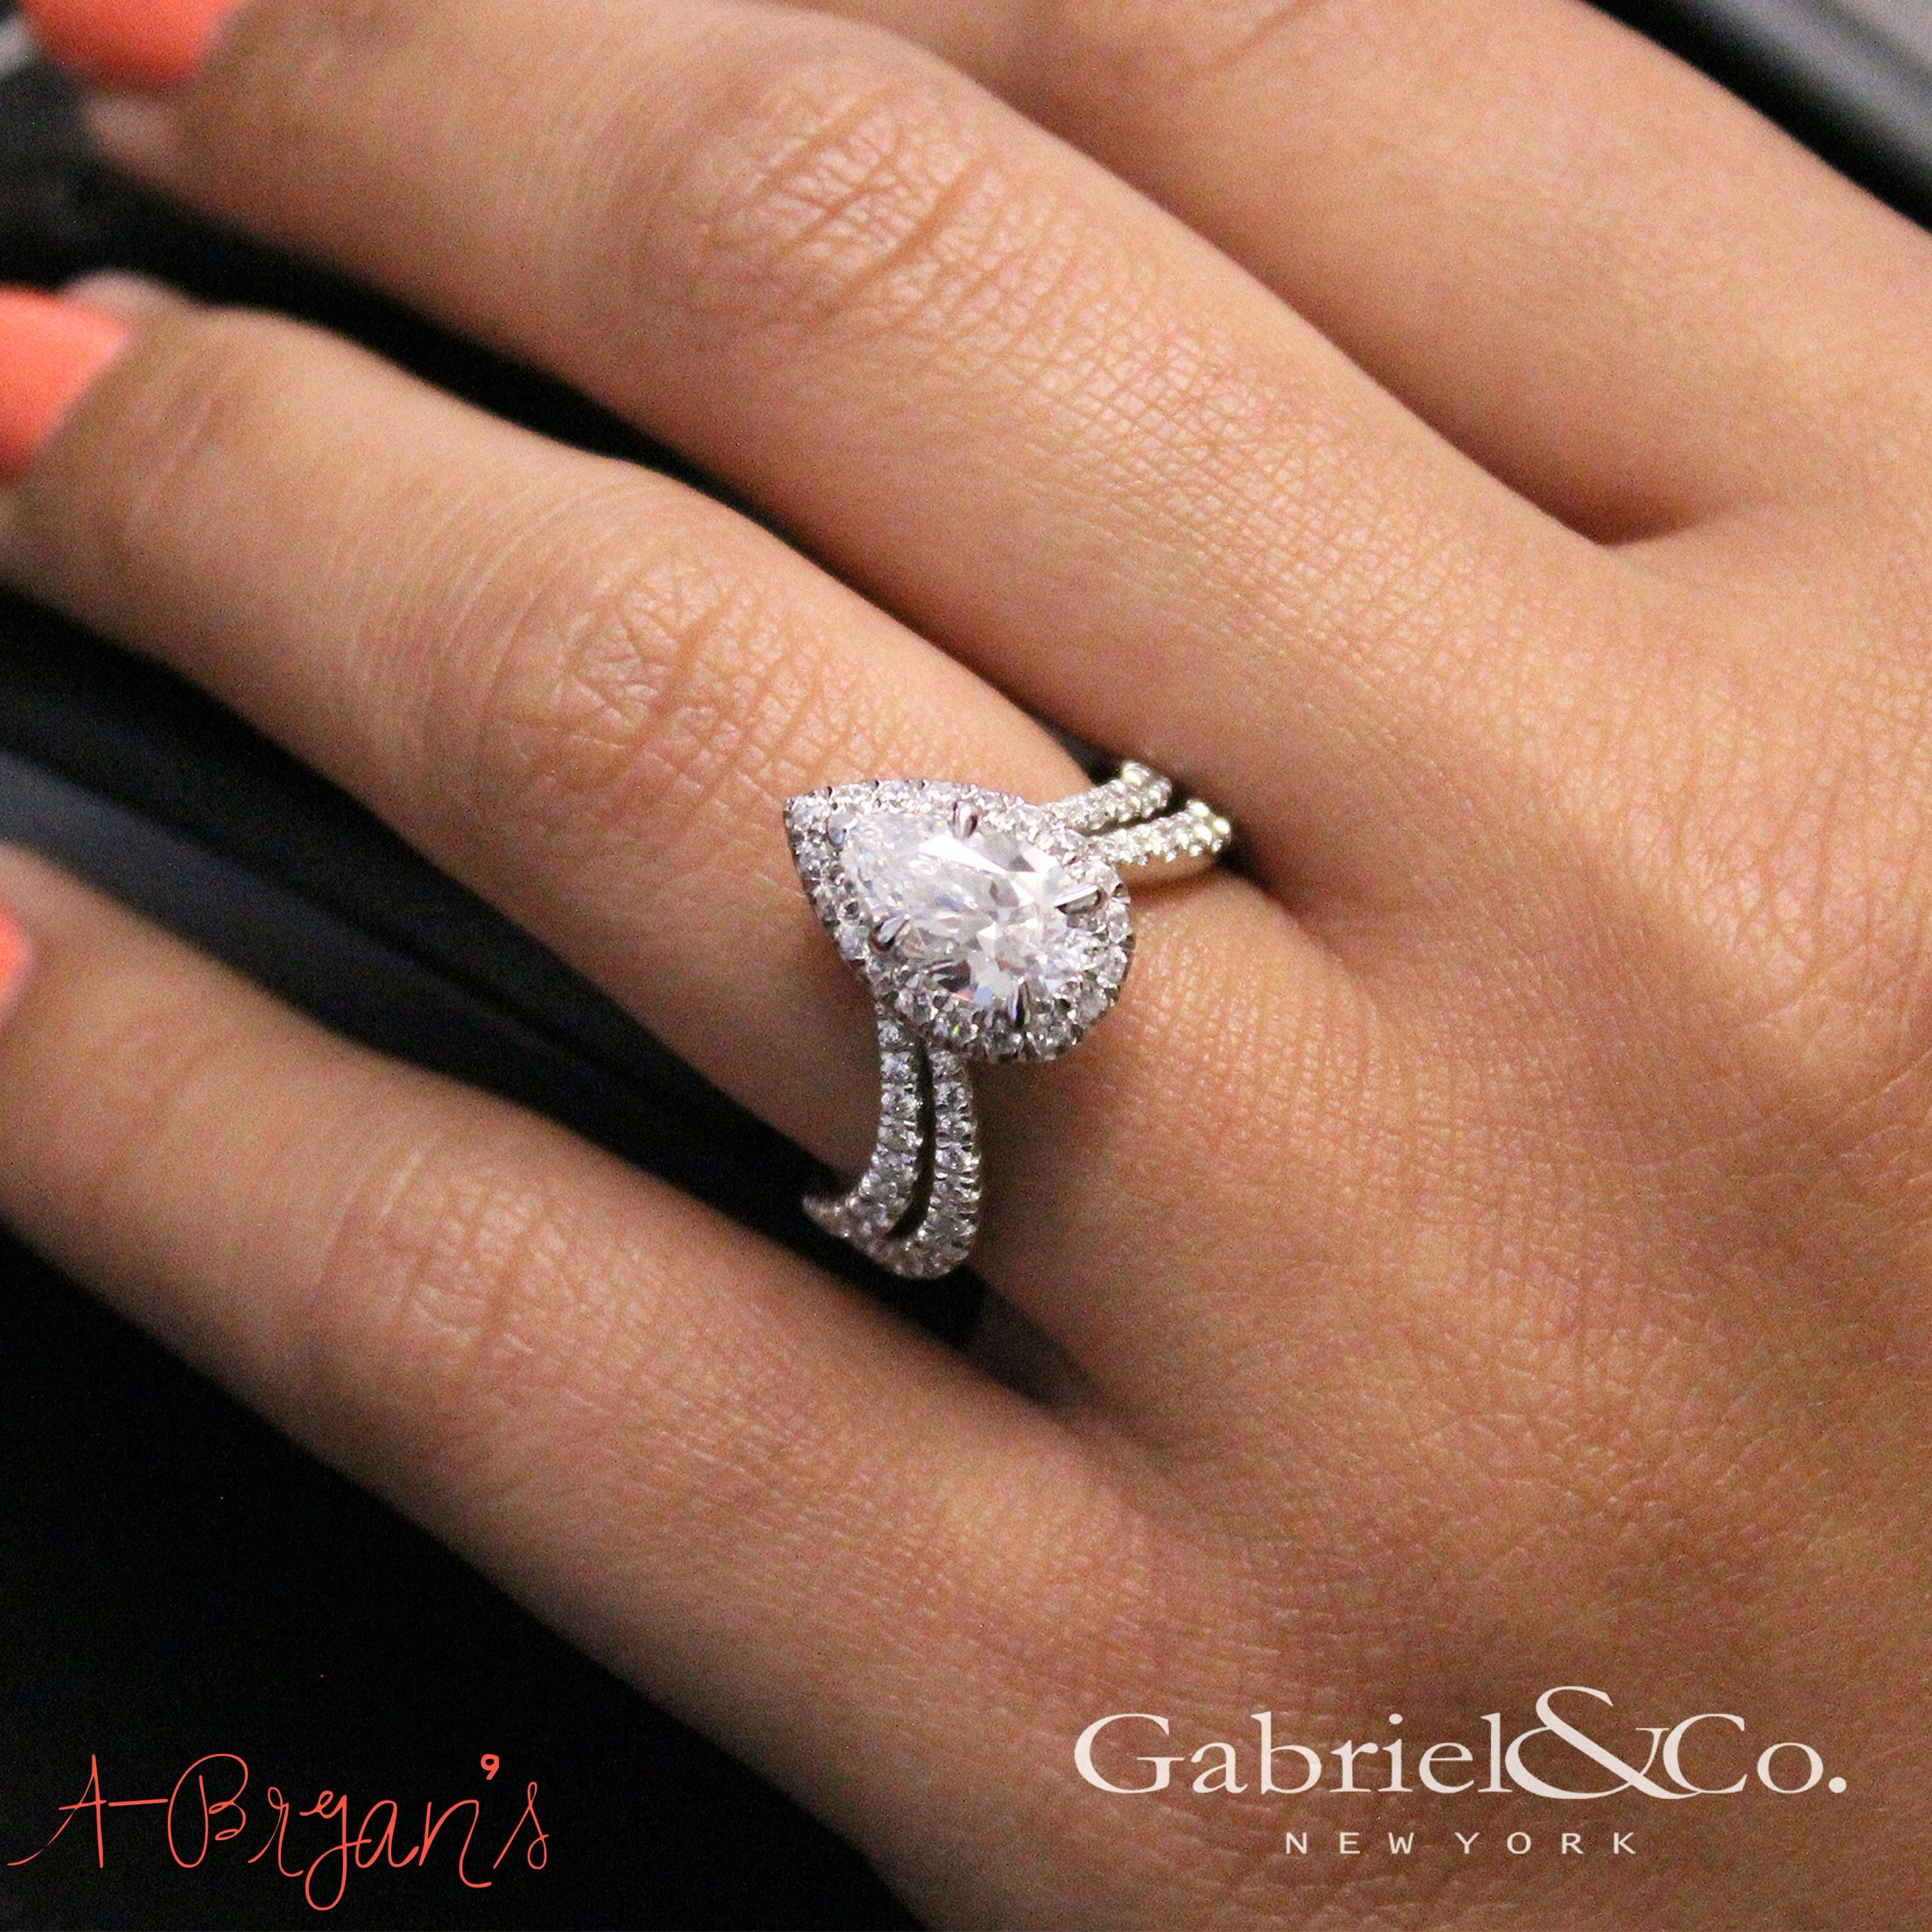 img amora page fg poll vs my many decisions moissanite so fb ultra f carat s lover diamond topic here gem color